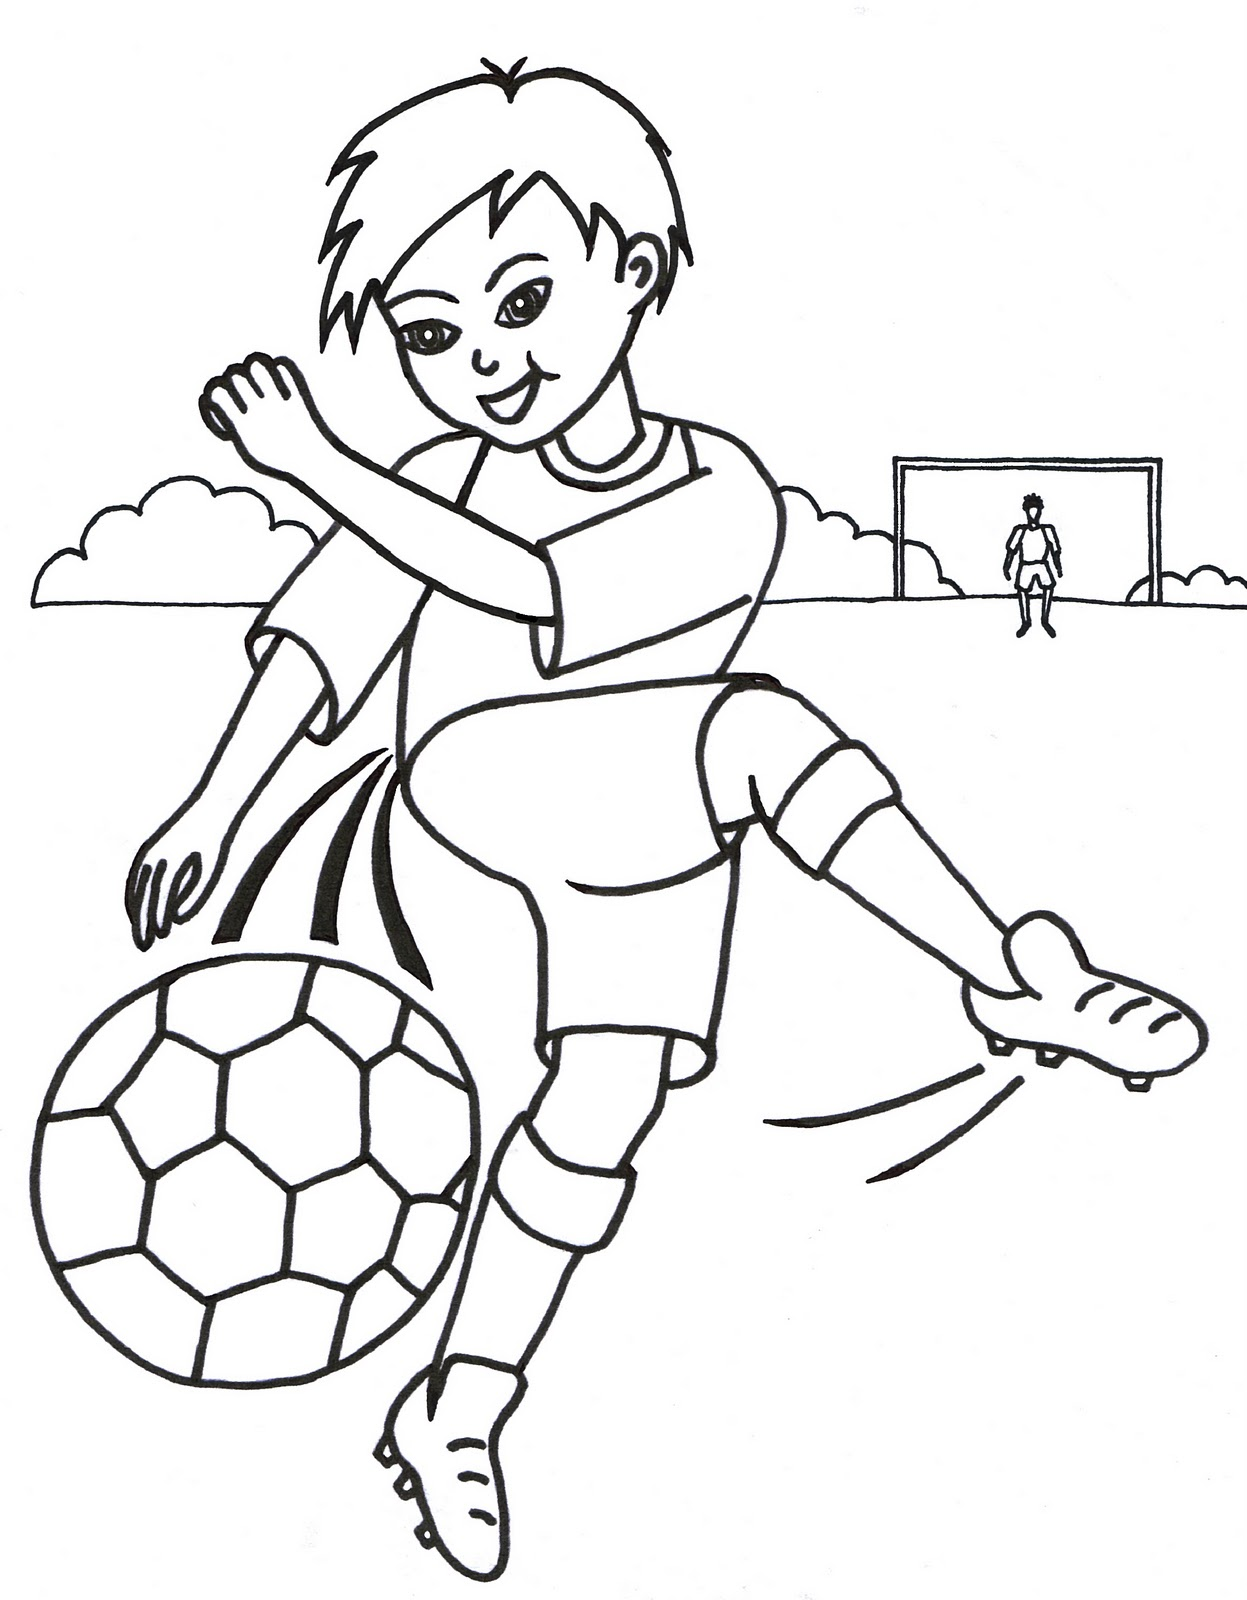 1247x1600 I Want To Become A Footballer Then Why Am I Studying Beauty